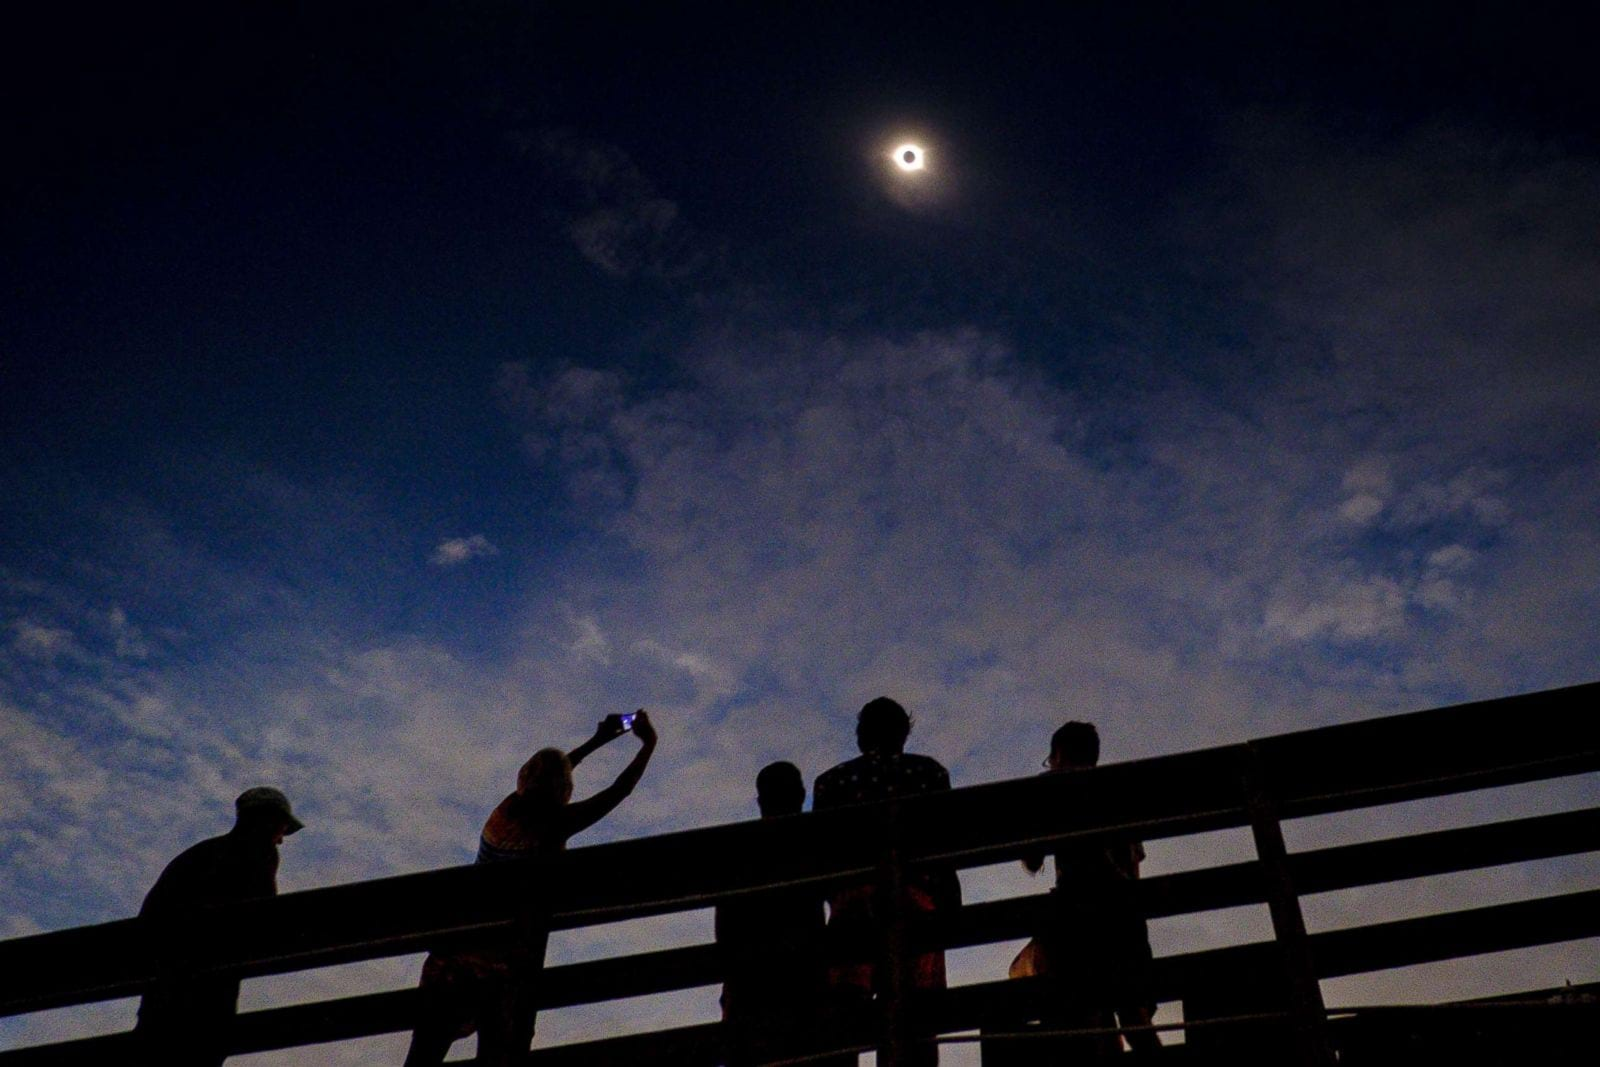 total-eclipse-02-as-gty-170821_3x2_1600